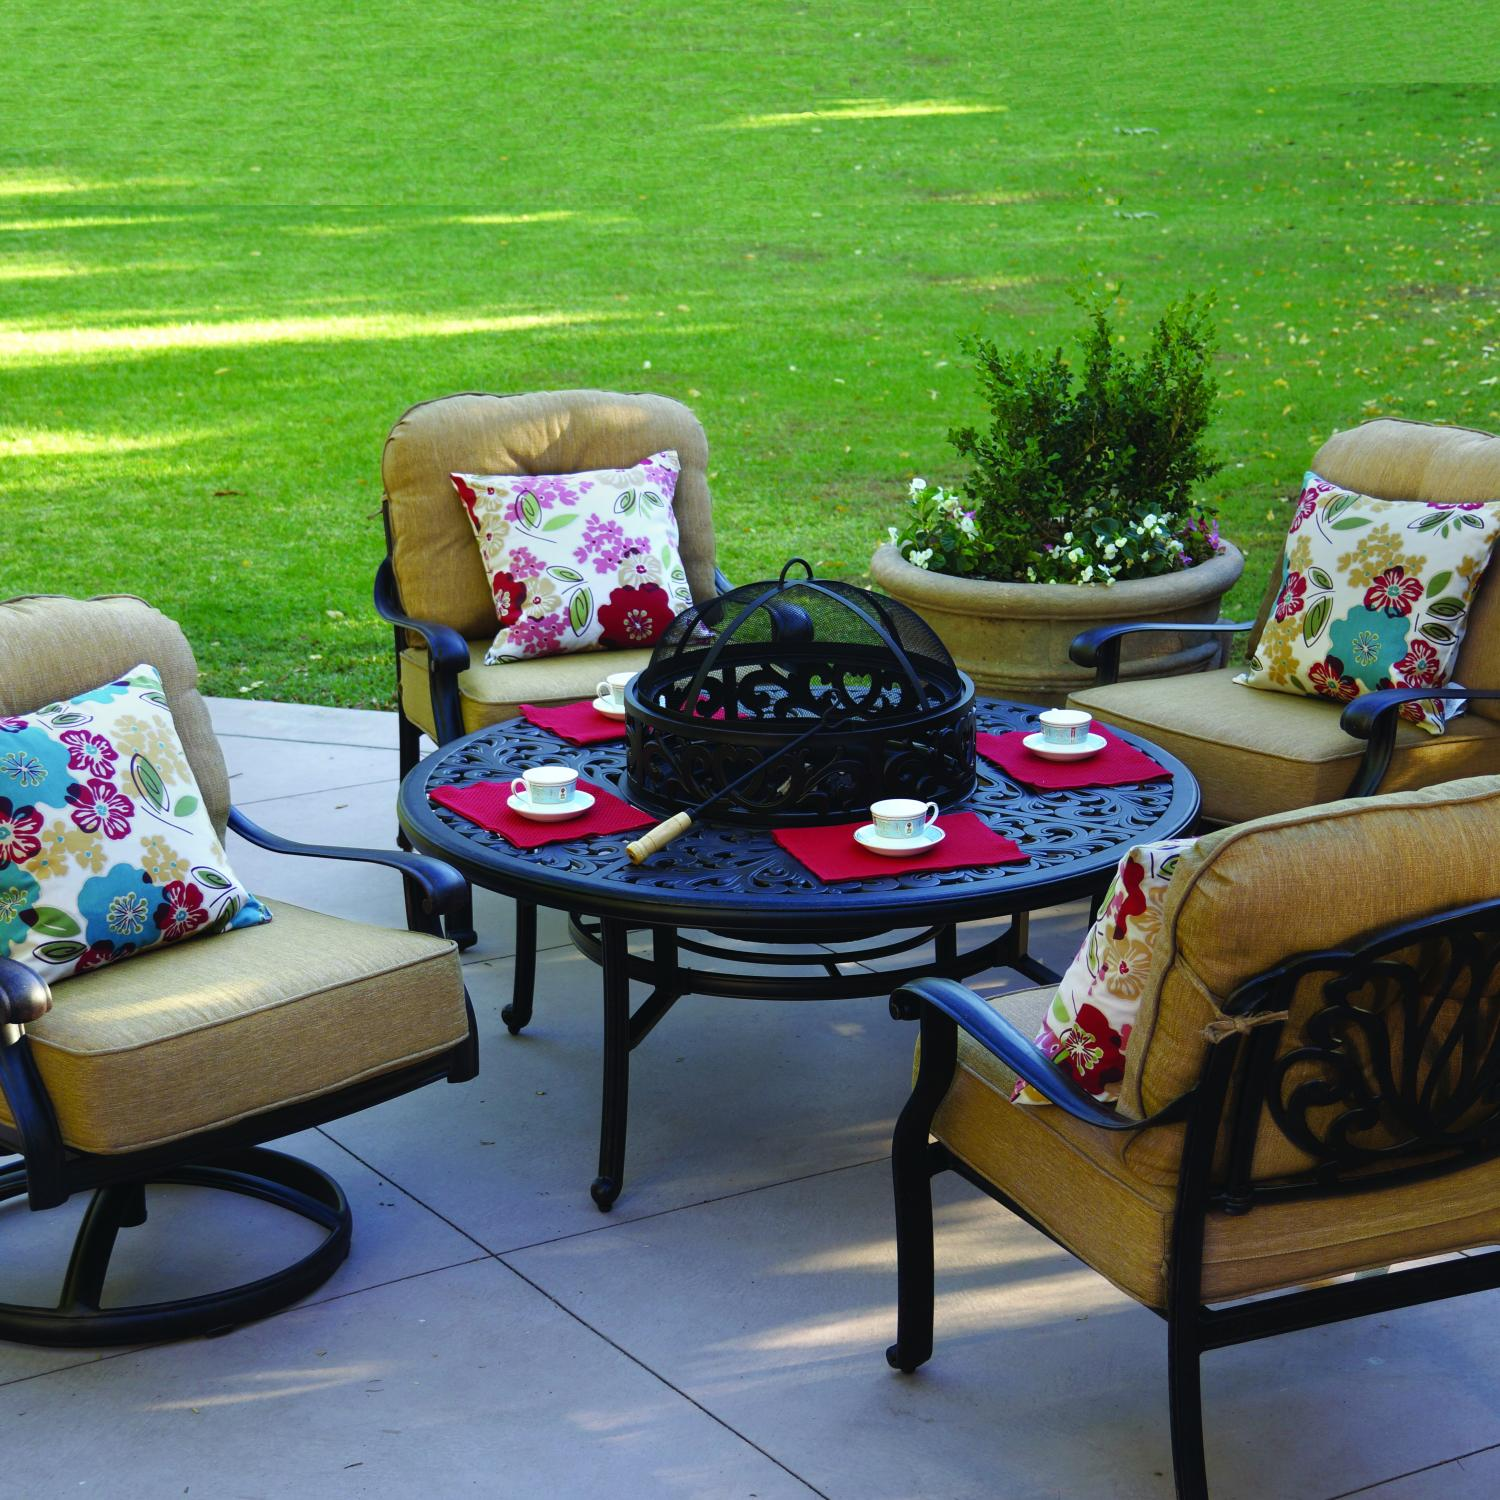 Darlee Elisabeth 4-Person Cast Aluminum Patio Conversation Set With BBQ Fire Pit And Ice Bucket Insert